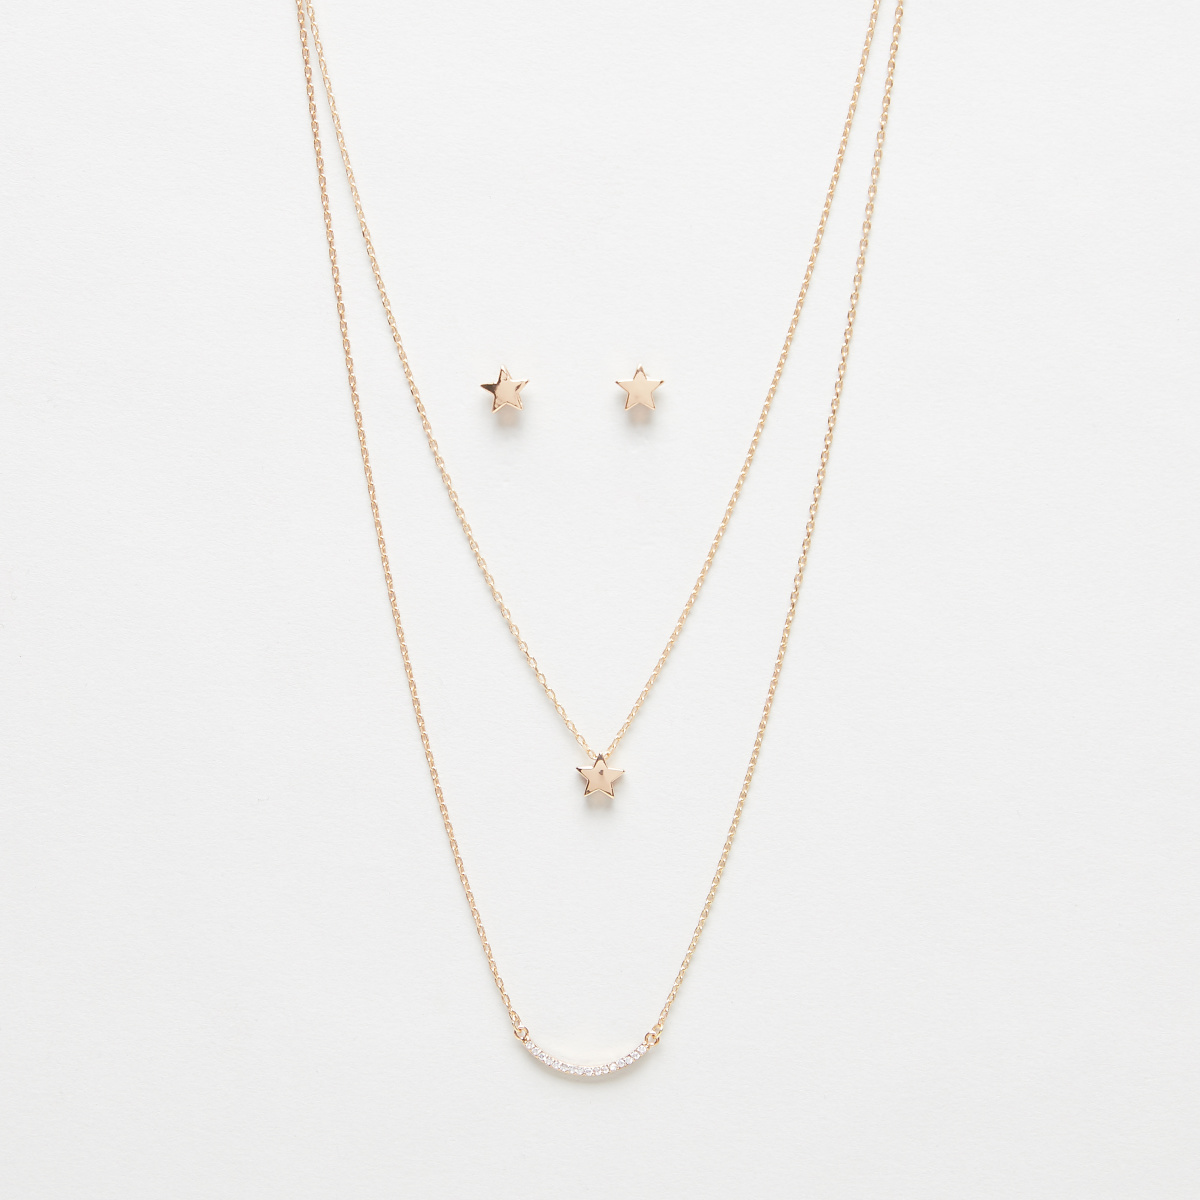 Double Layered Gold Finish Necklace with Star Pendant and Earrings